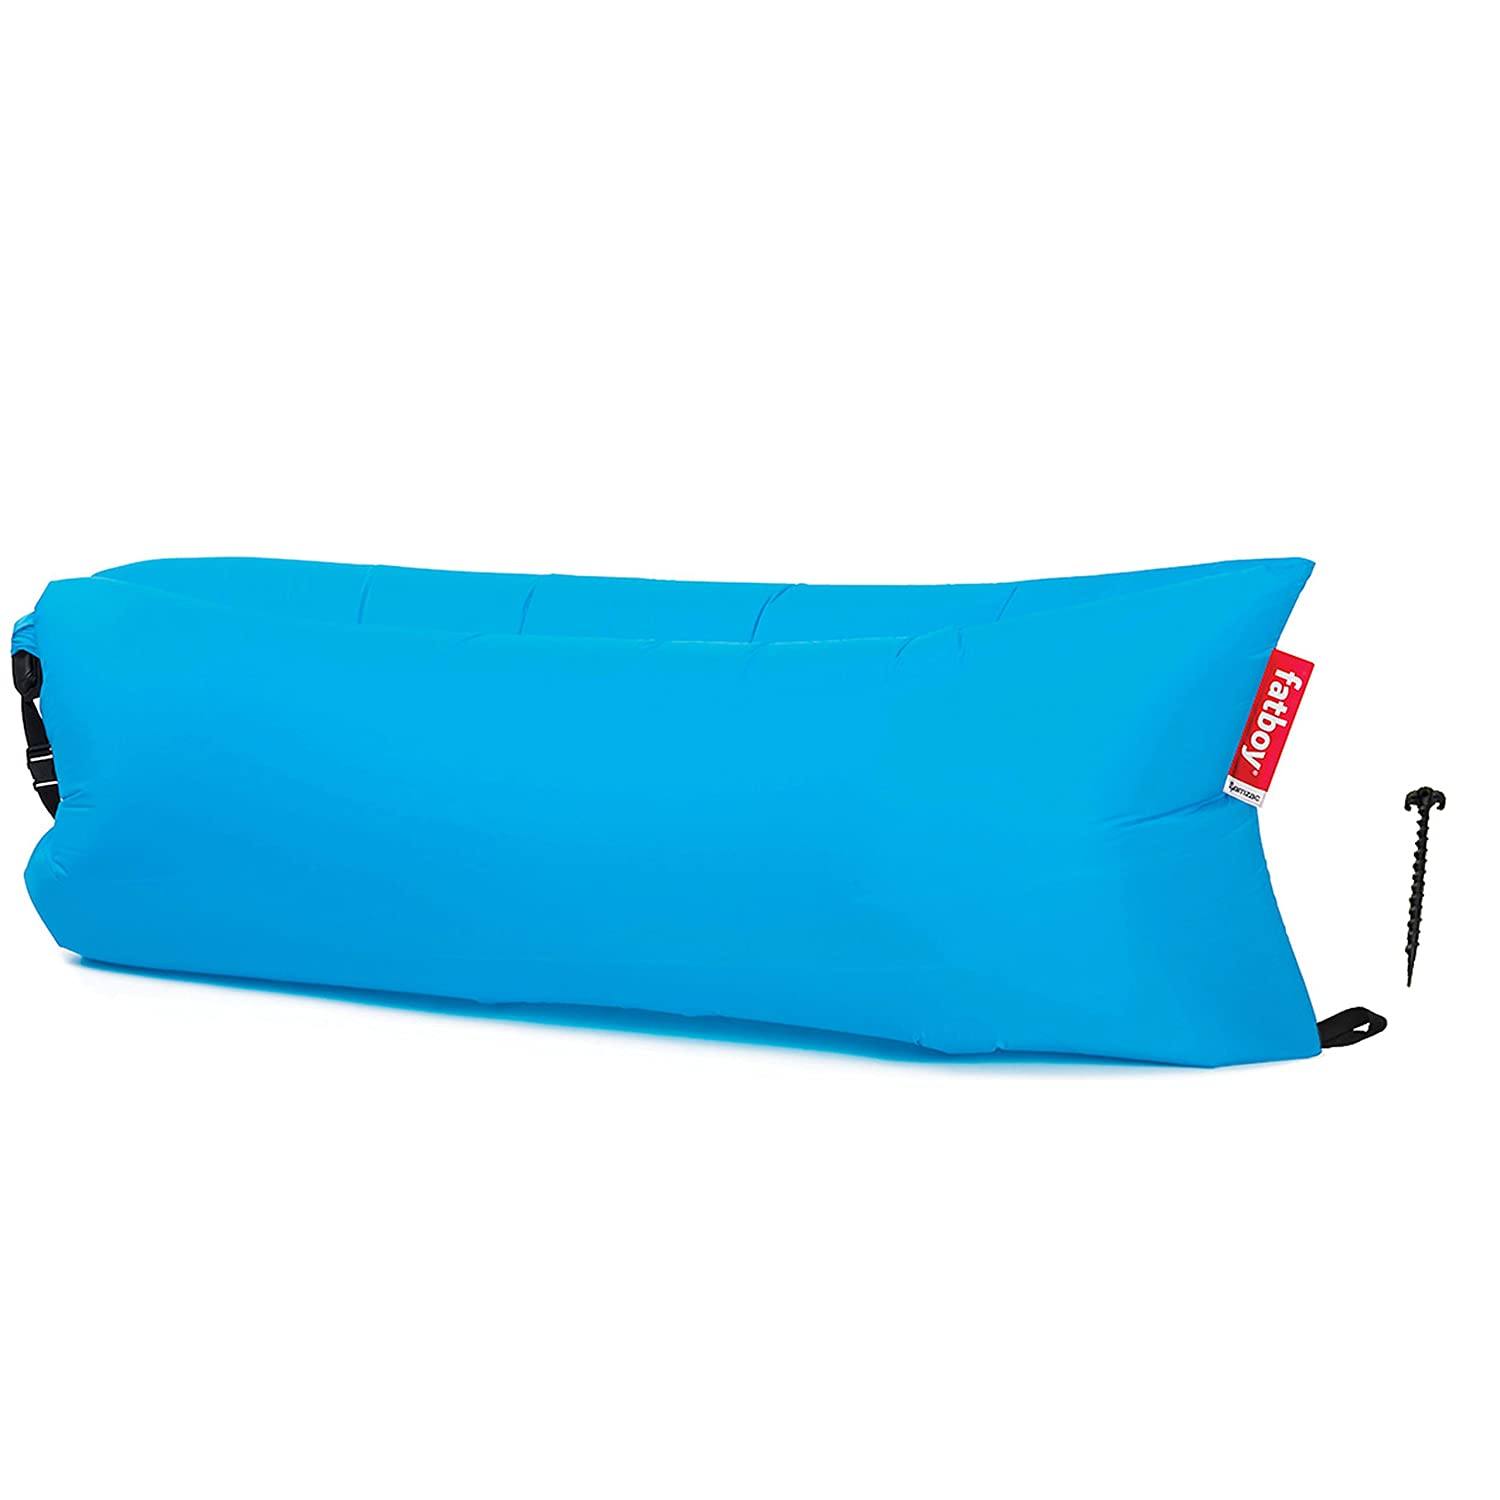 Fatboy Lamzac The Original Inflatable Air Lounger and Carry Bag Inflatable Couch for Indoor or Outdoor Hangout or Inflatable Lounge Air Chair Hawaii Blue LAM-HBLU